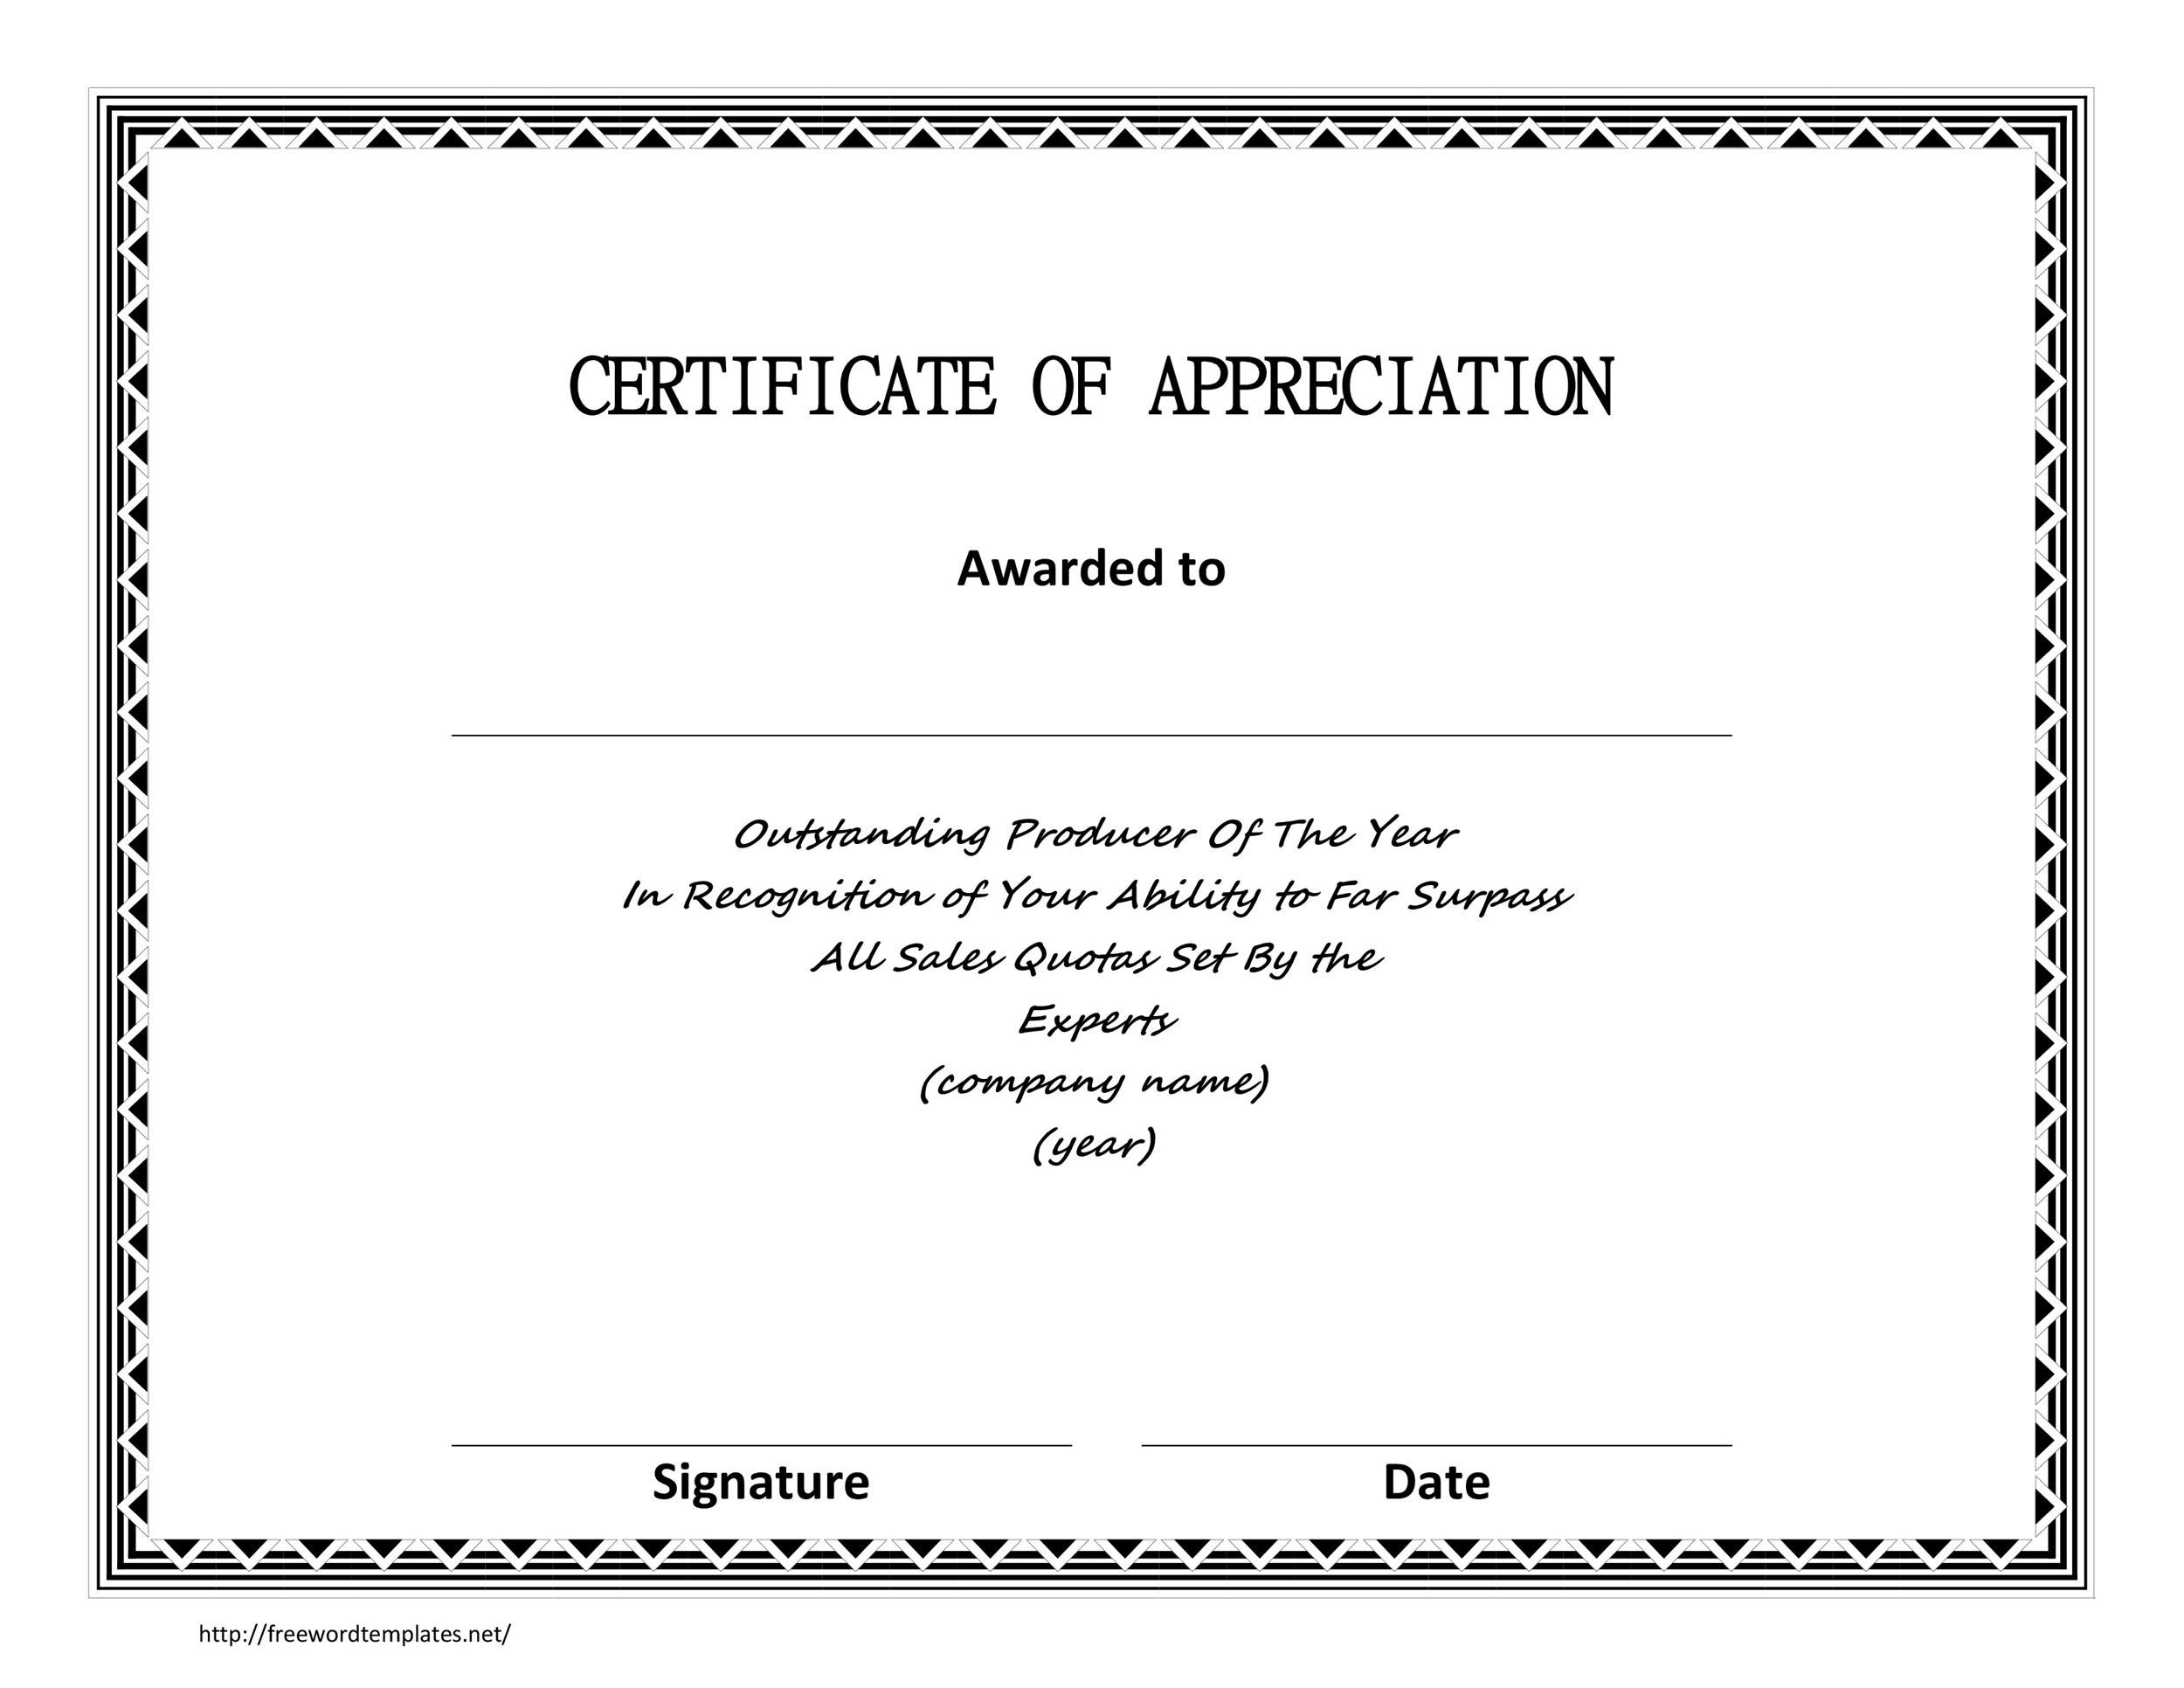 30 free certificate of appreciation templates and letters, Modern powerpoint